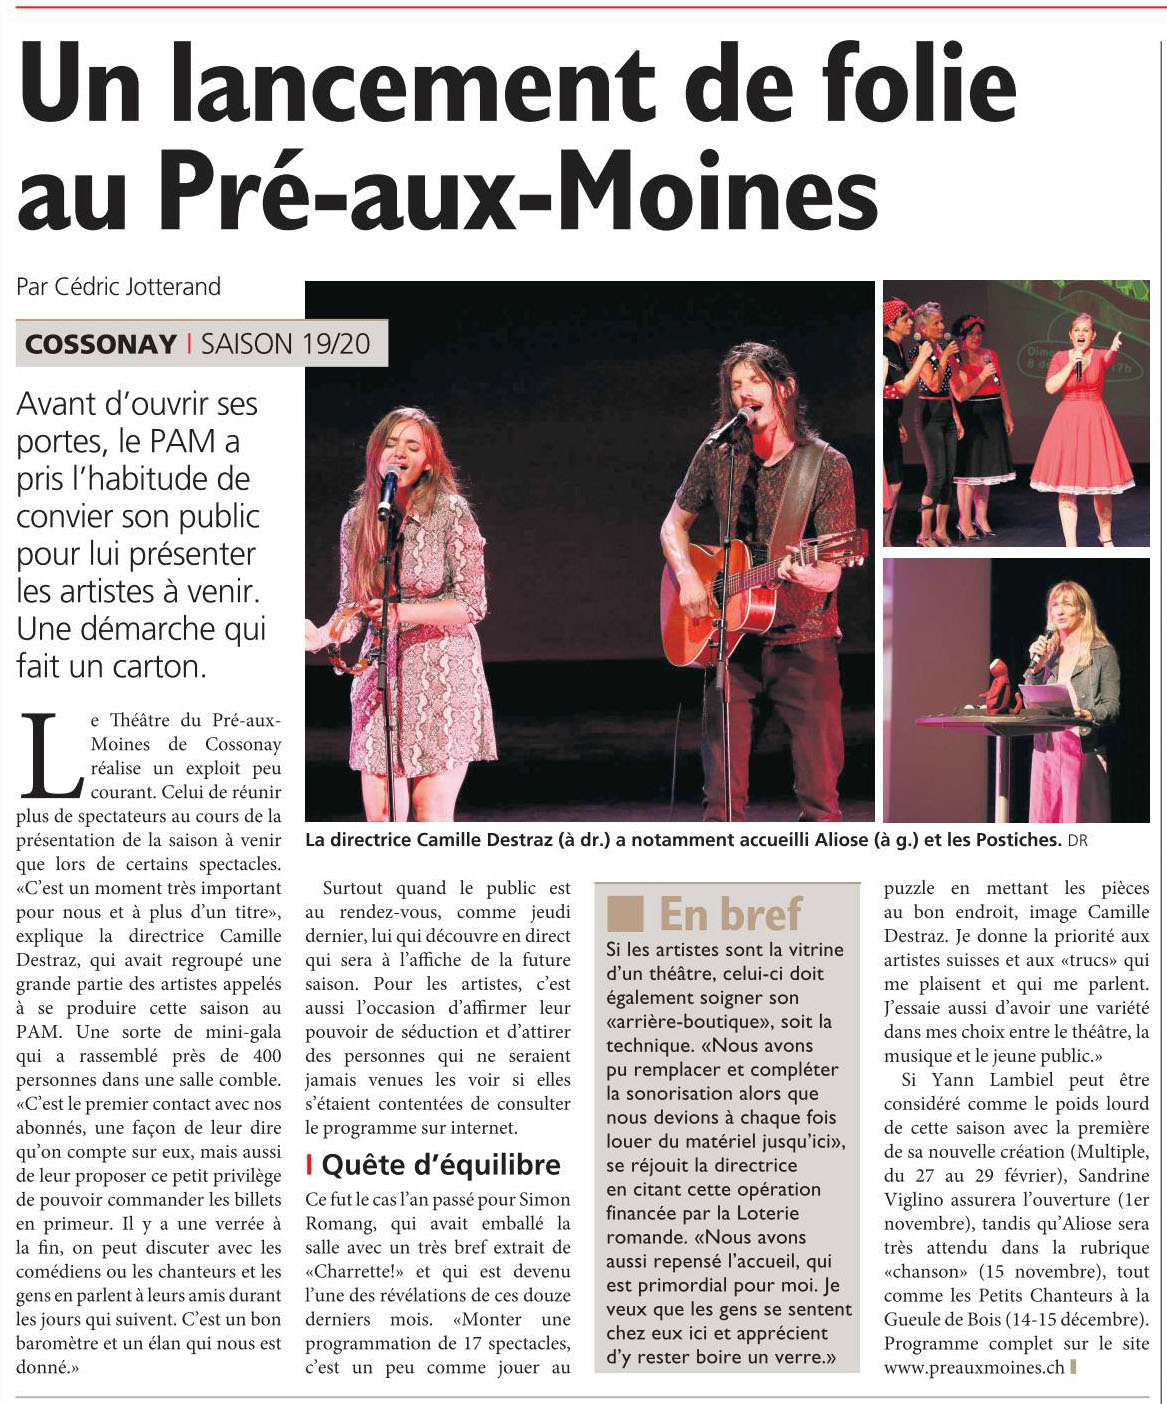 Journal de Morges, 06.09.2019